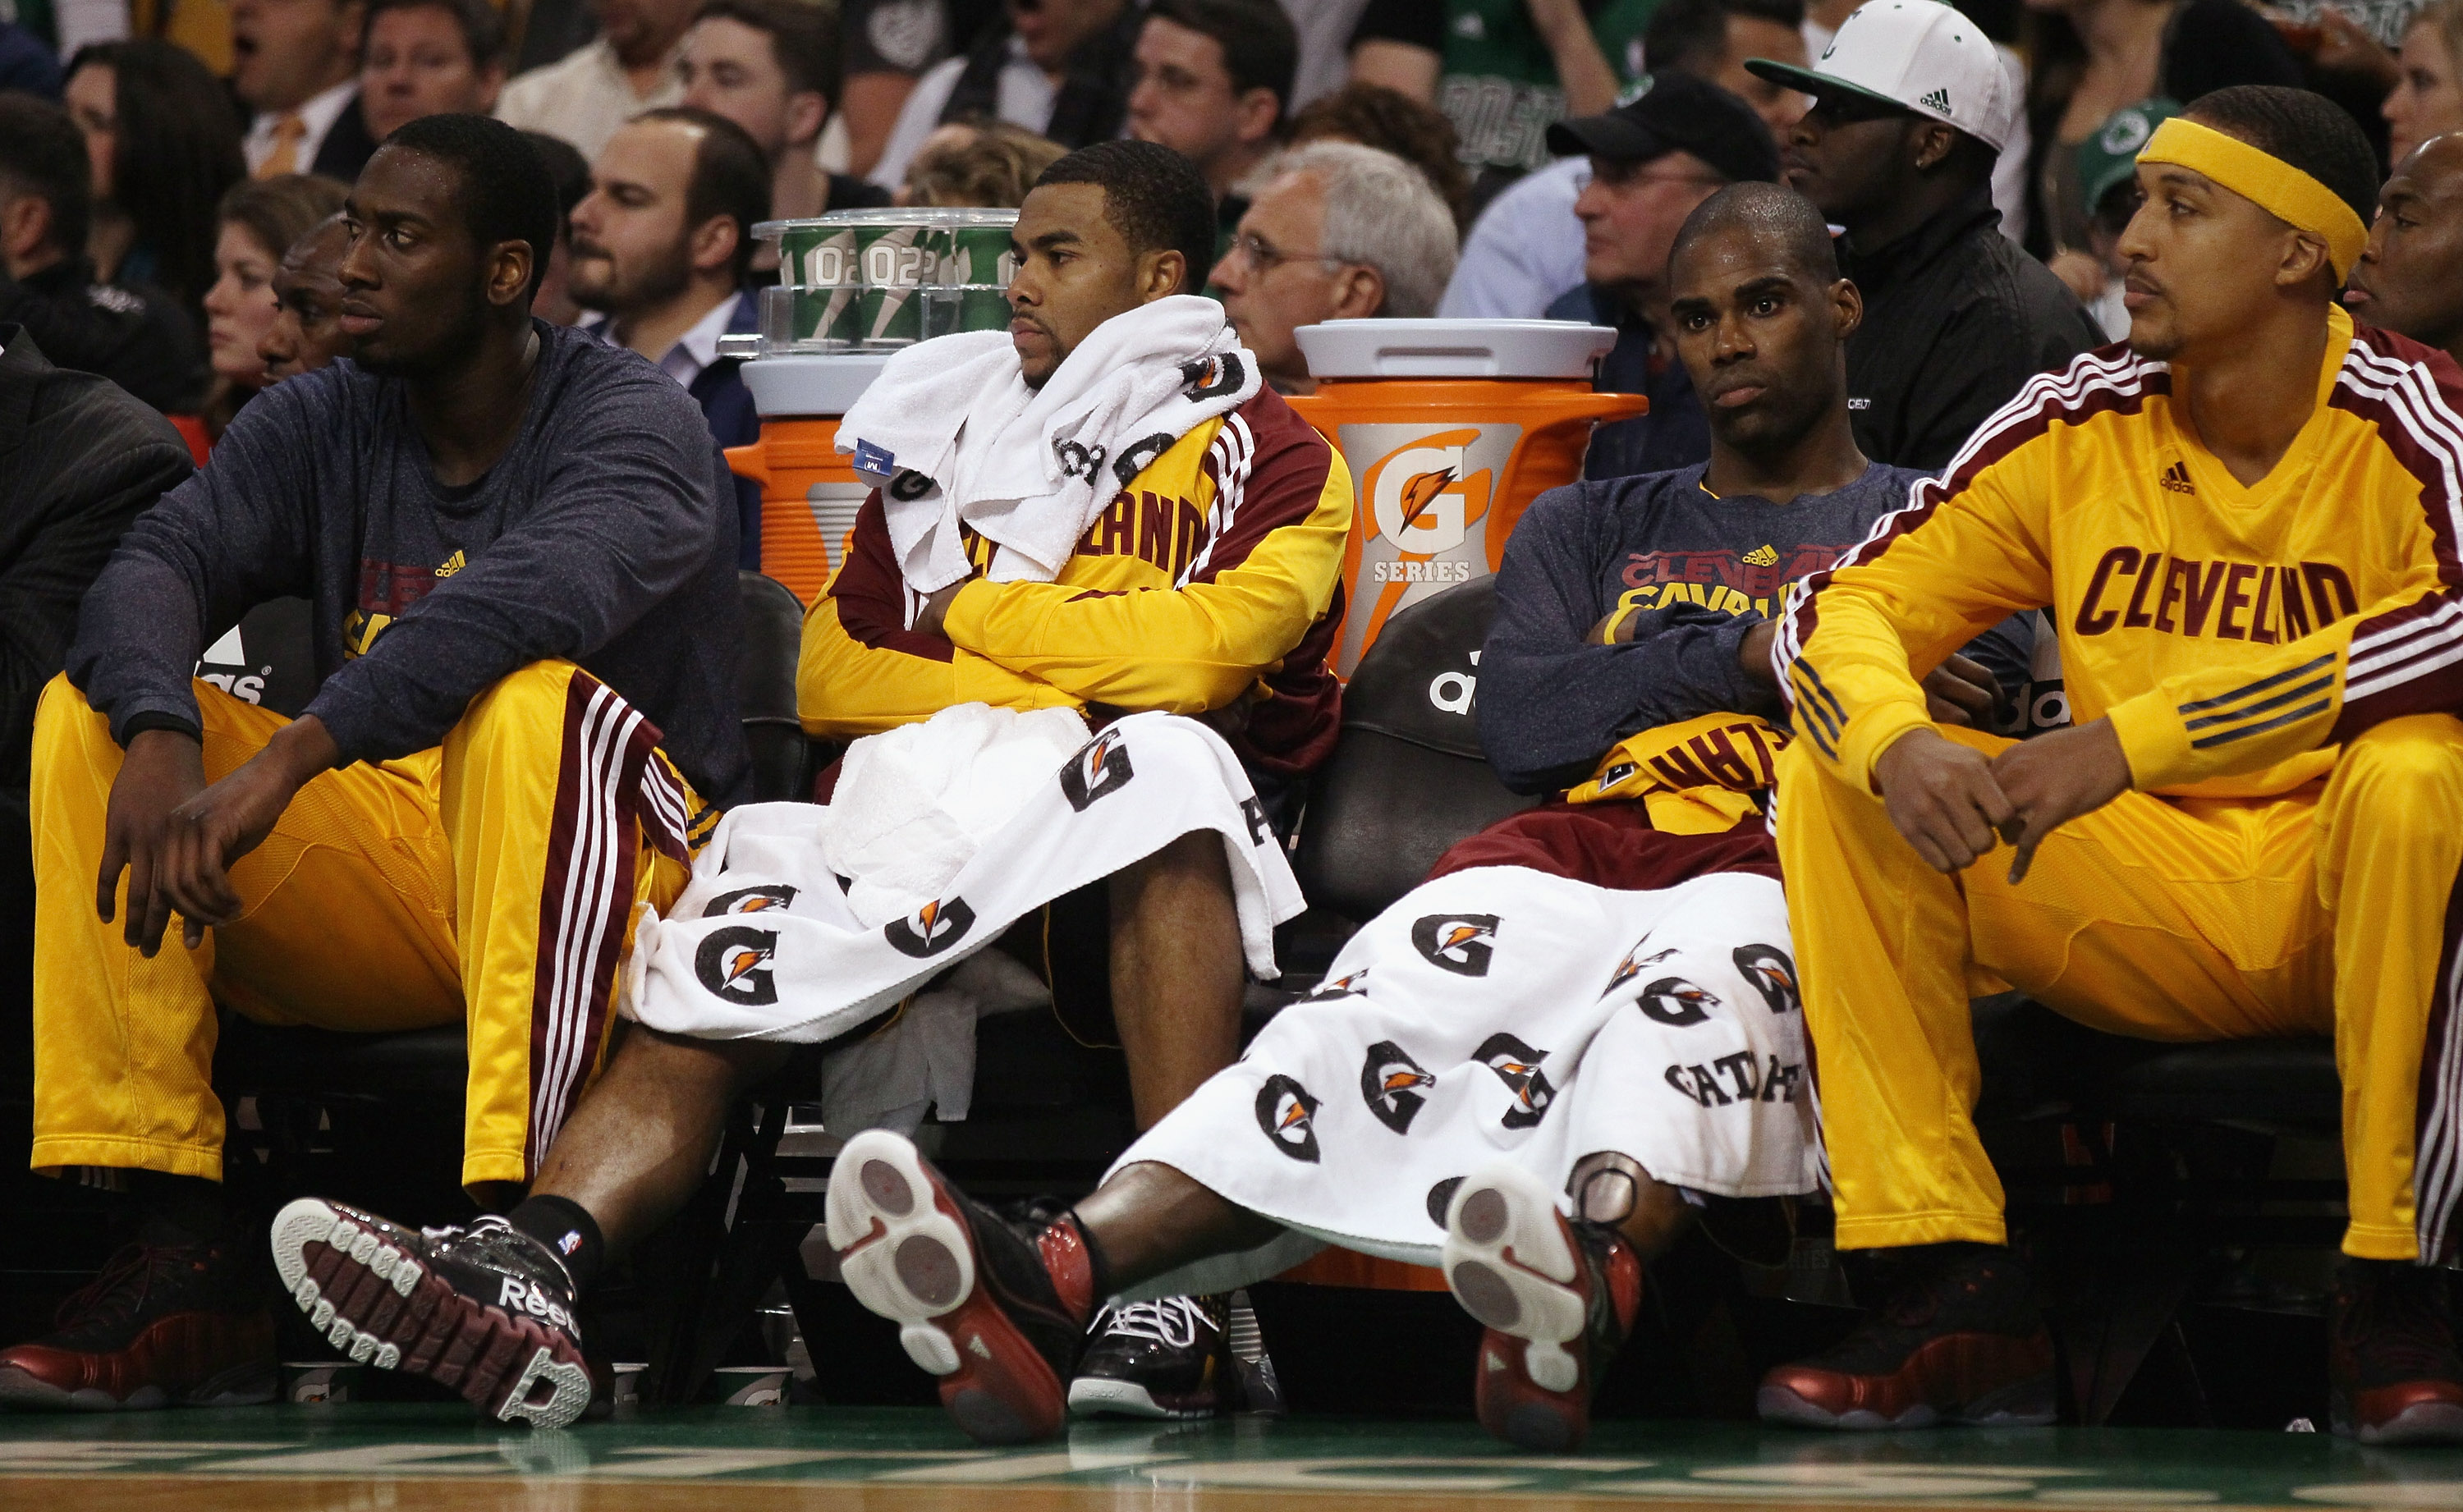 BOSTON, MA - JANUARY 25:  Member of the Cleveland Cavaliers react on the bench as they lose their 18th straight game this season on January 25, 2011 at the TD Garden in Boston, Massachusetts. The Boston Celtics defeated the Cavaliers 112-95.  NOTE TO USER